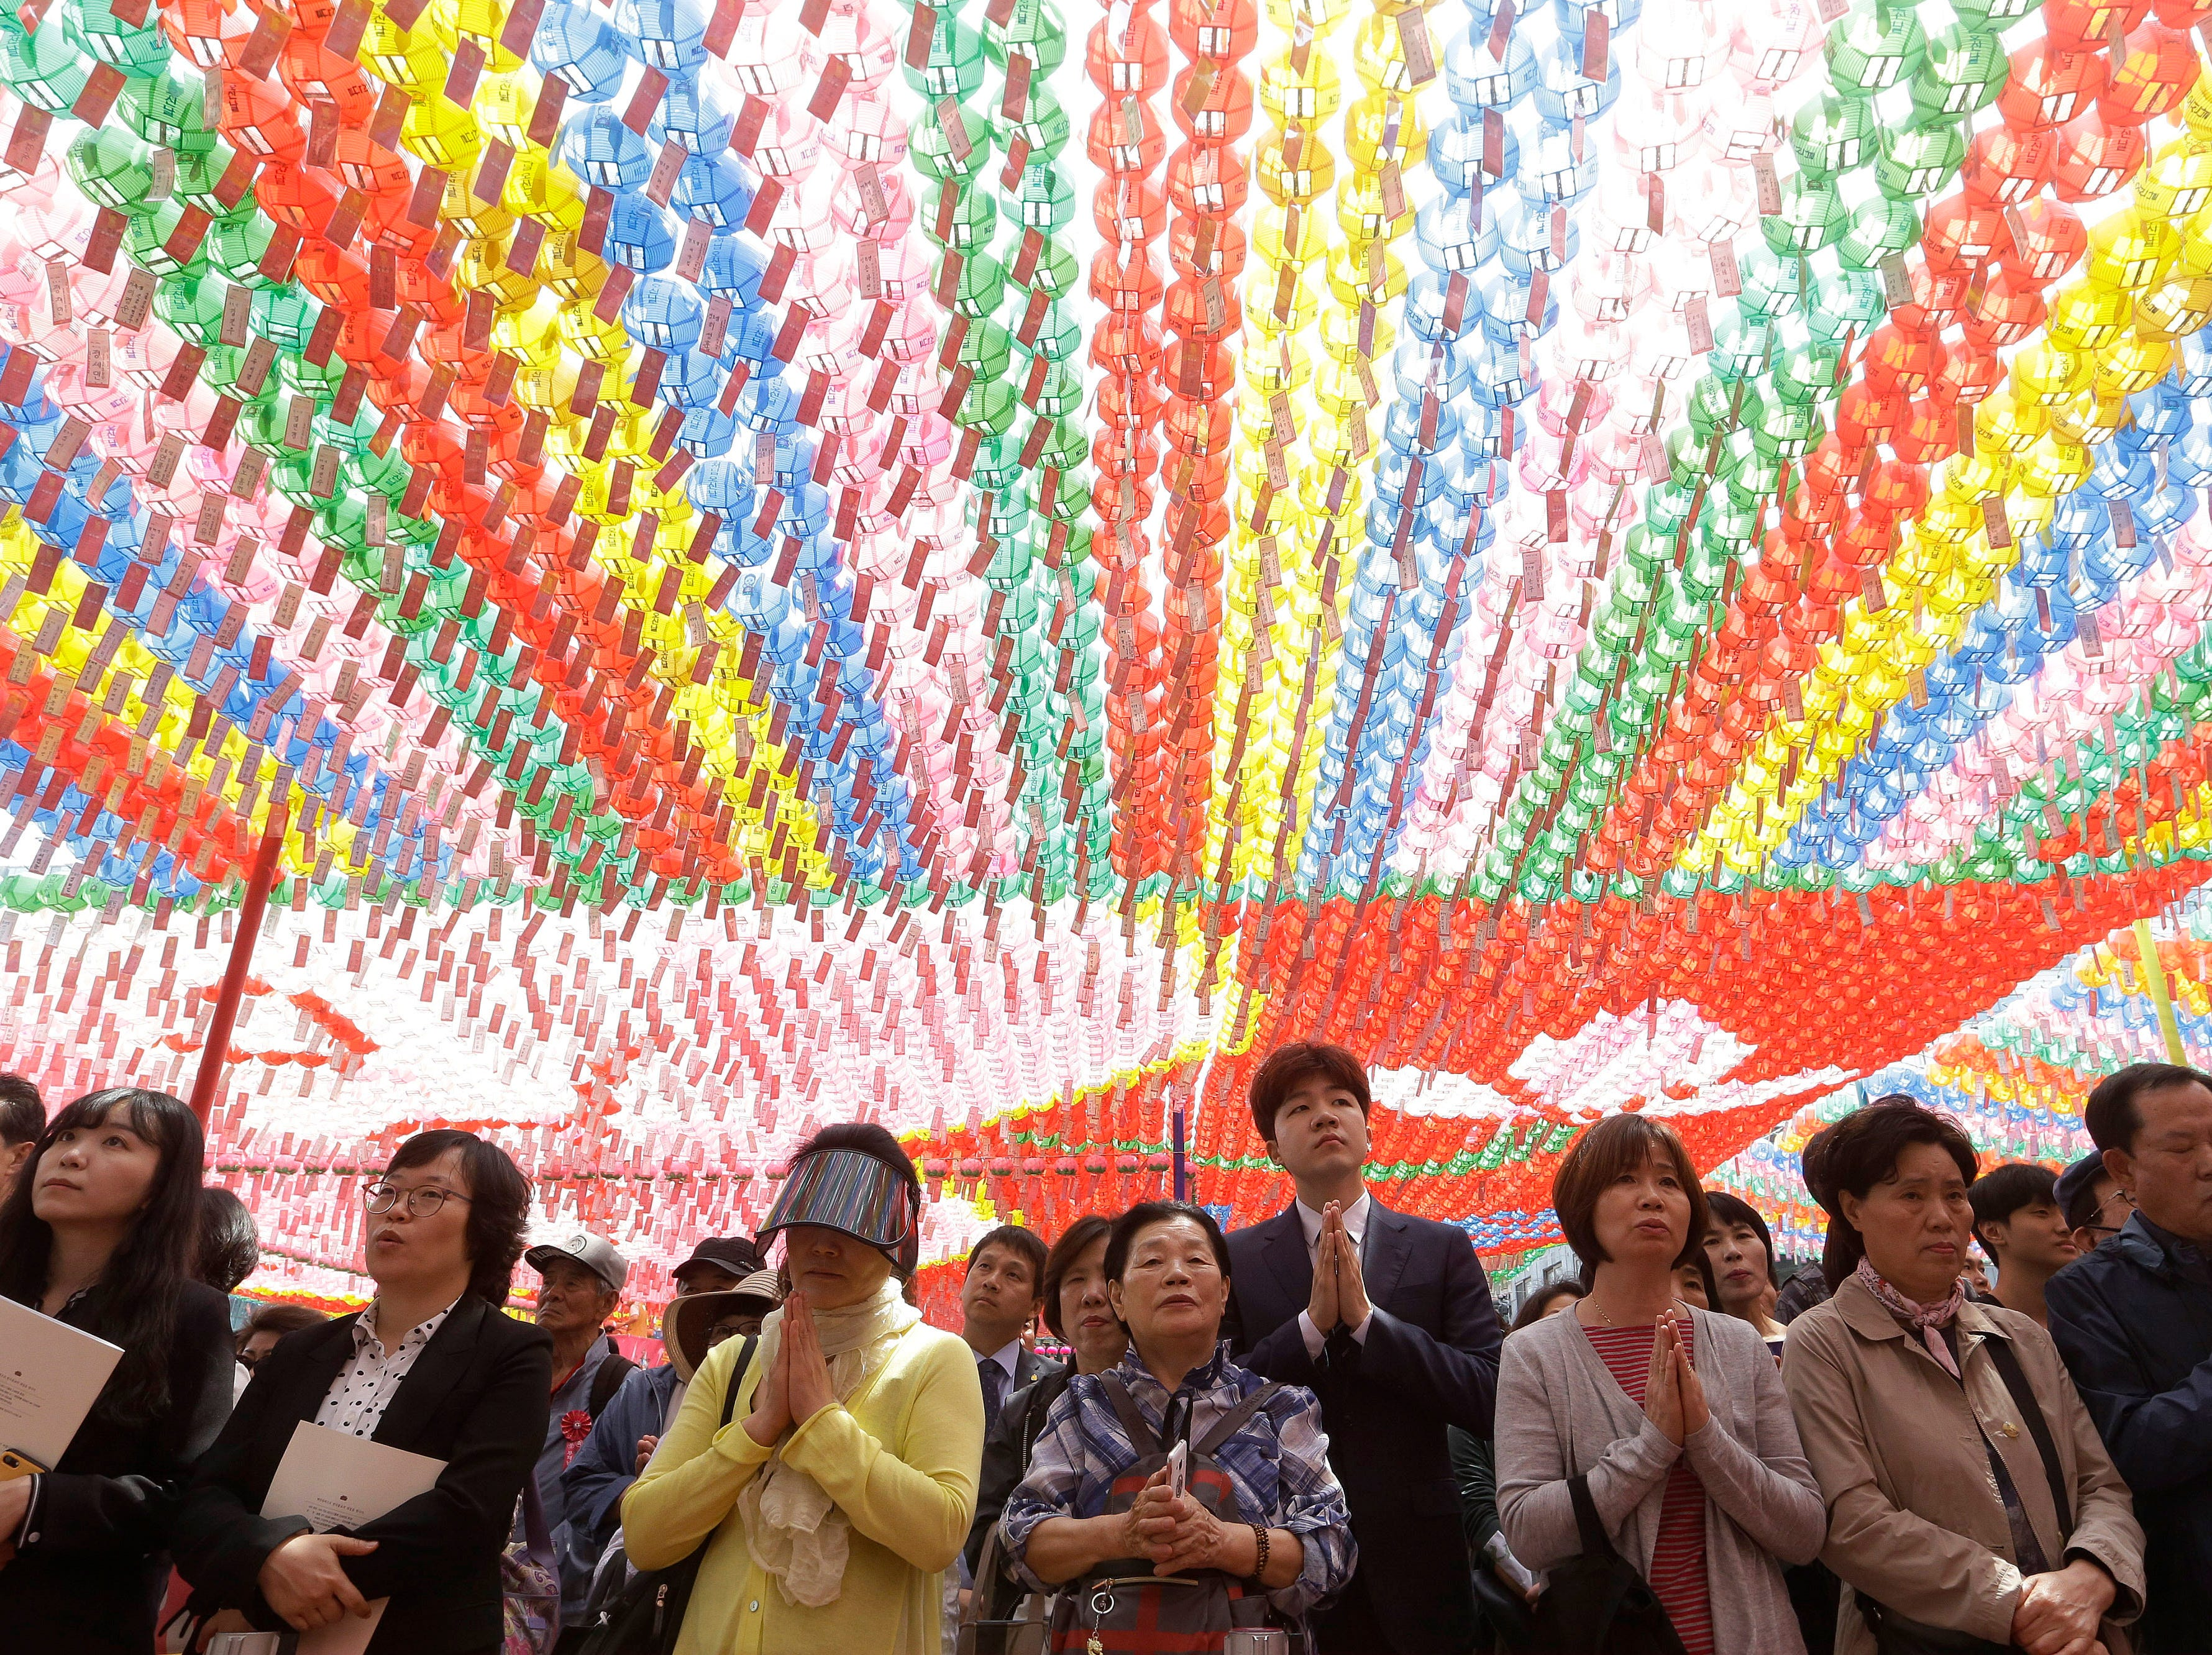 Buddhists pray during a service to celebrate Buddha's birthday at the Jogye temple in Seoul, South Korea, Sunday, May 12, 2019. Buddhists visit the temple across the country to celebrate the Buddha's birthday.